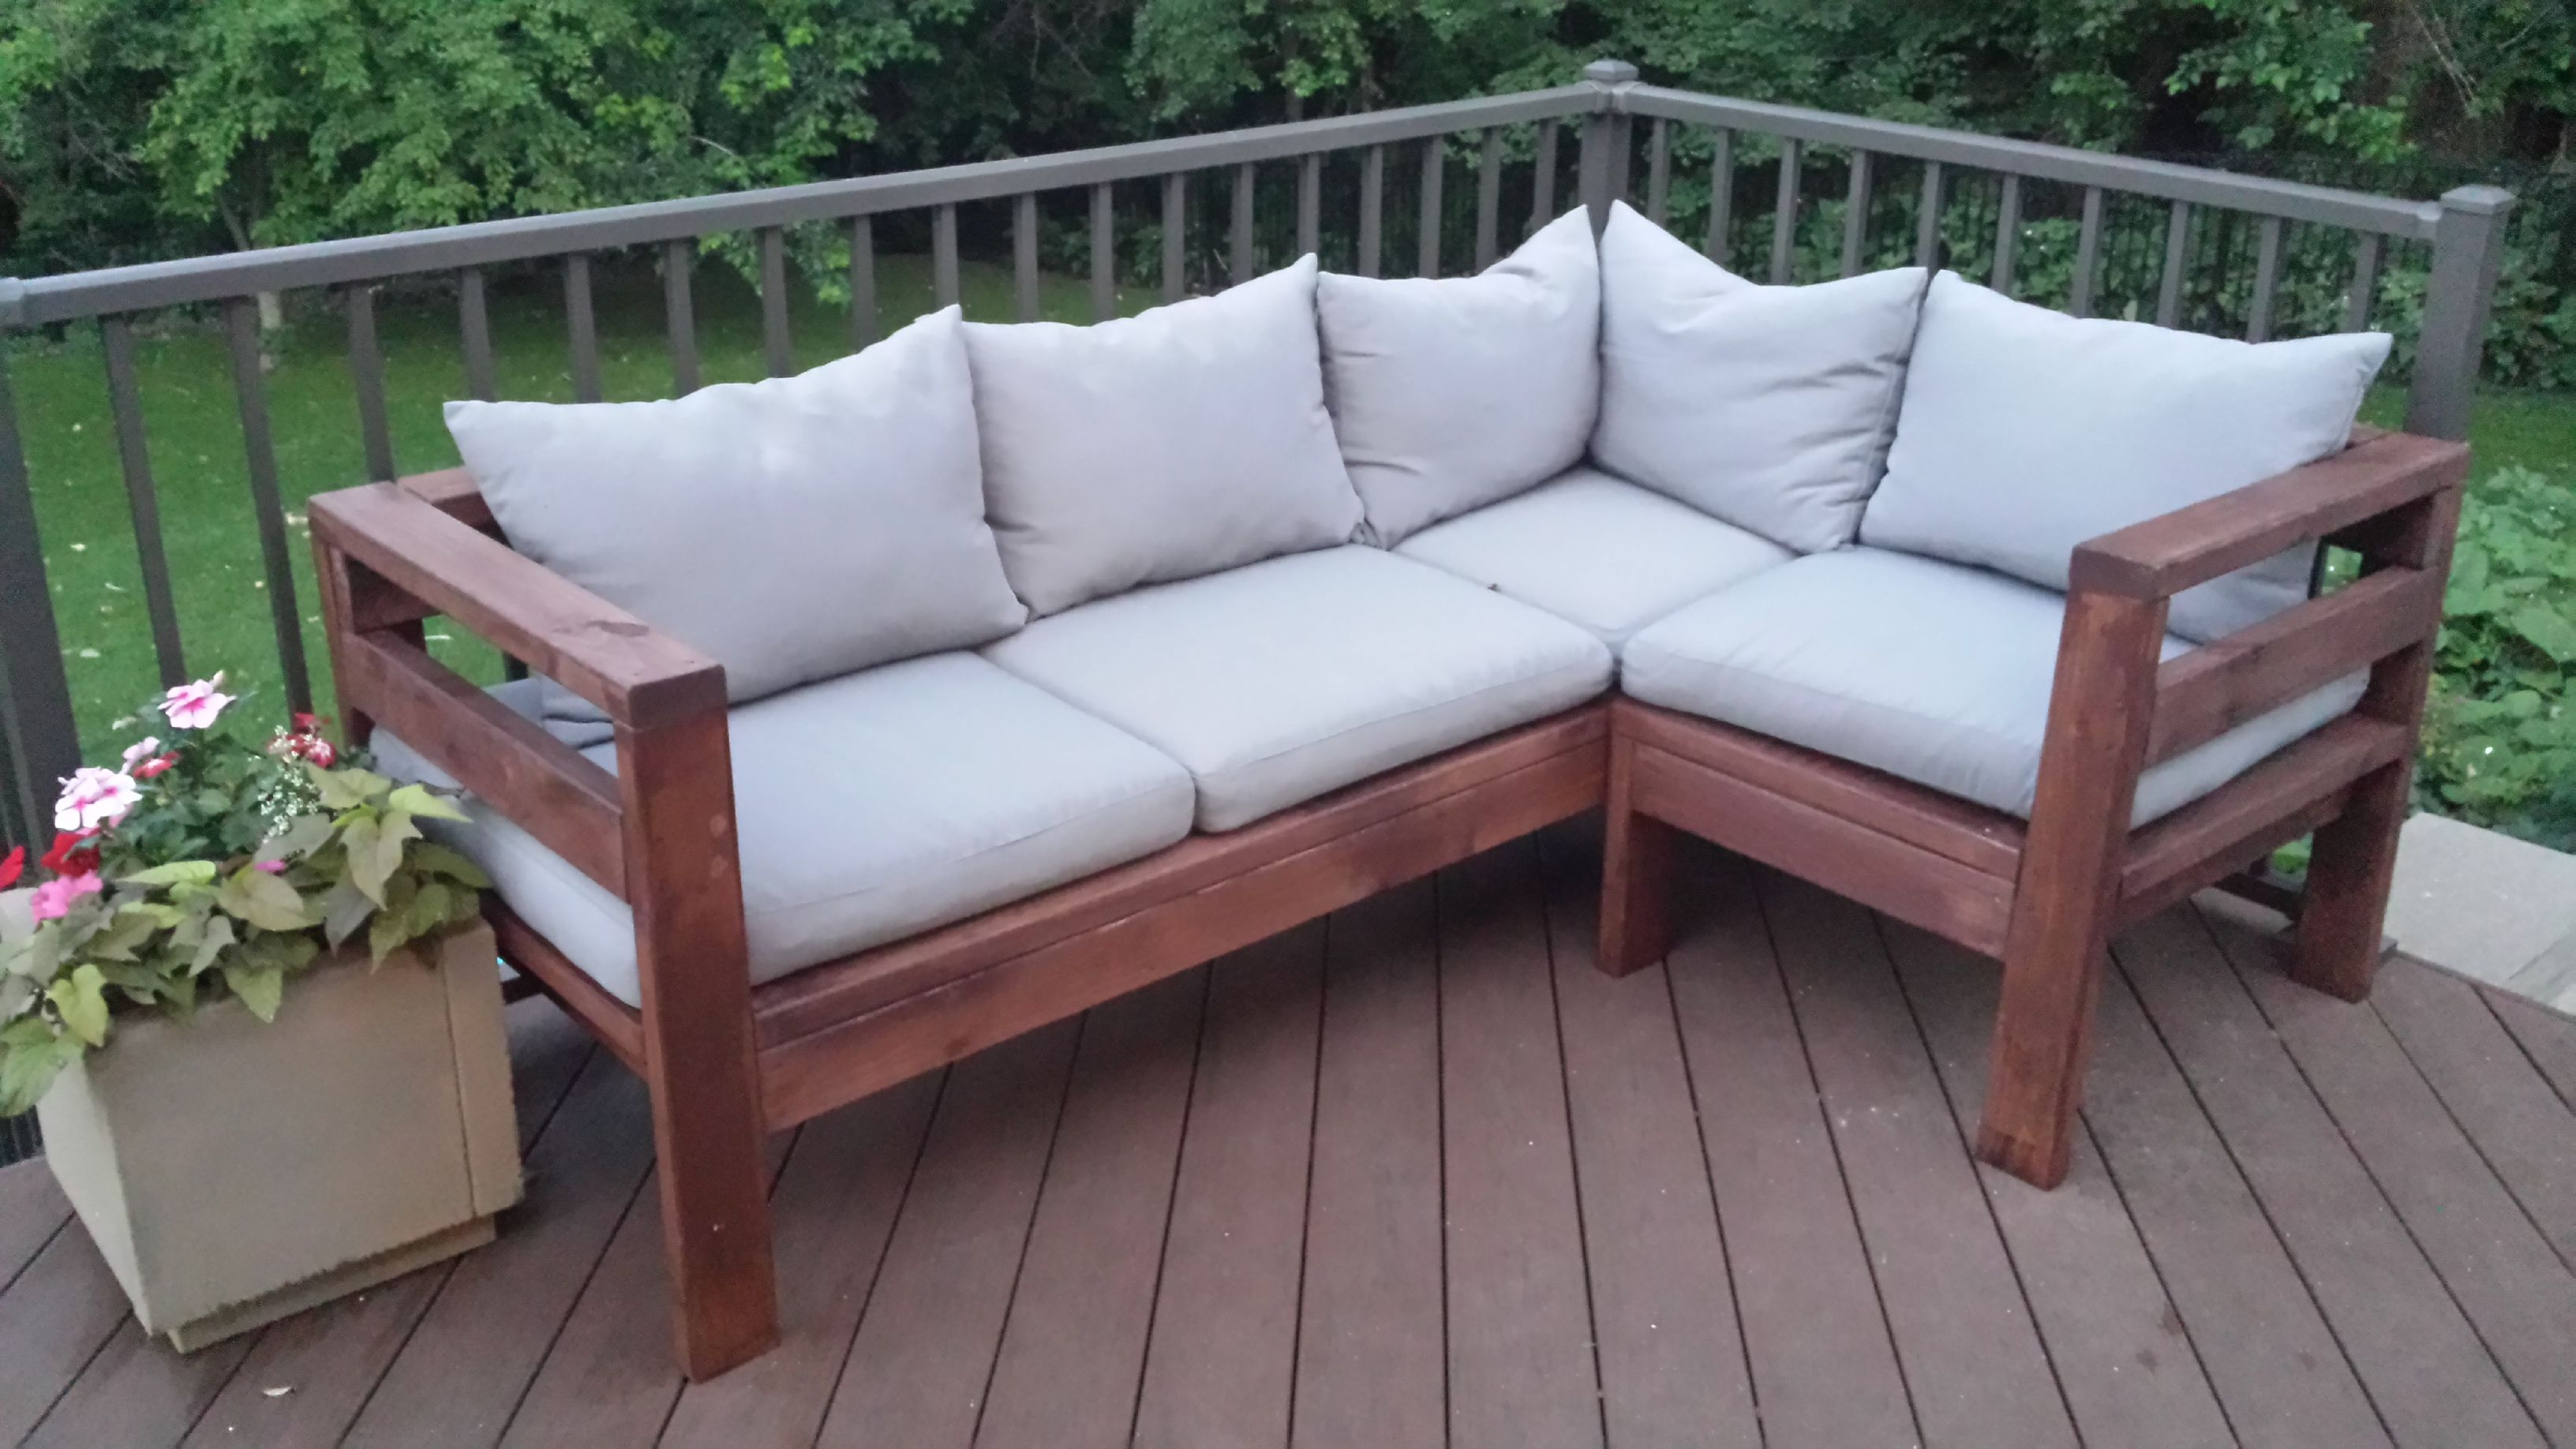 Ana White Outdoor Sectional DIY Projects home Pinterest